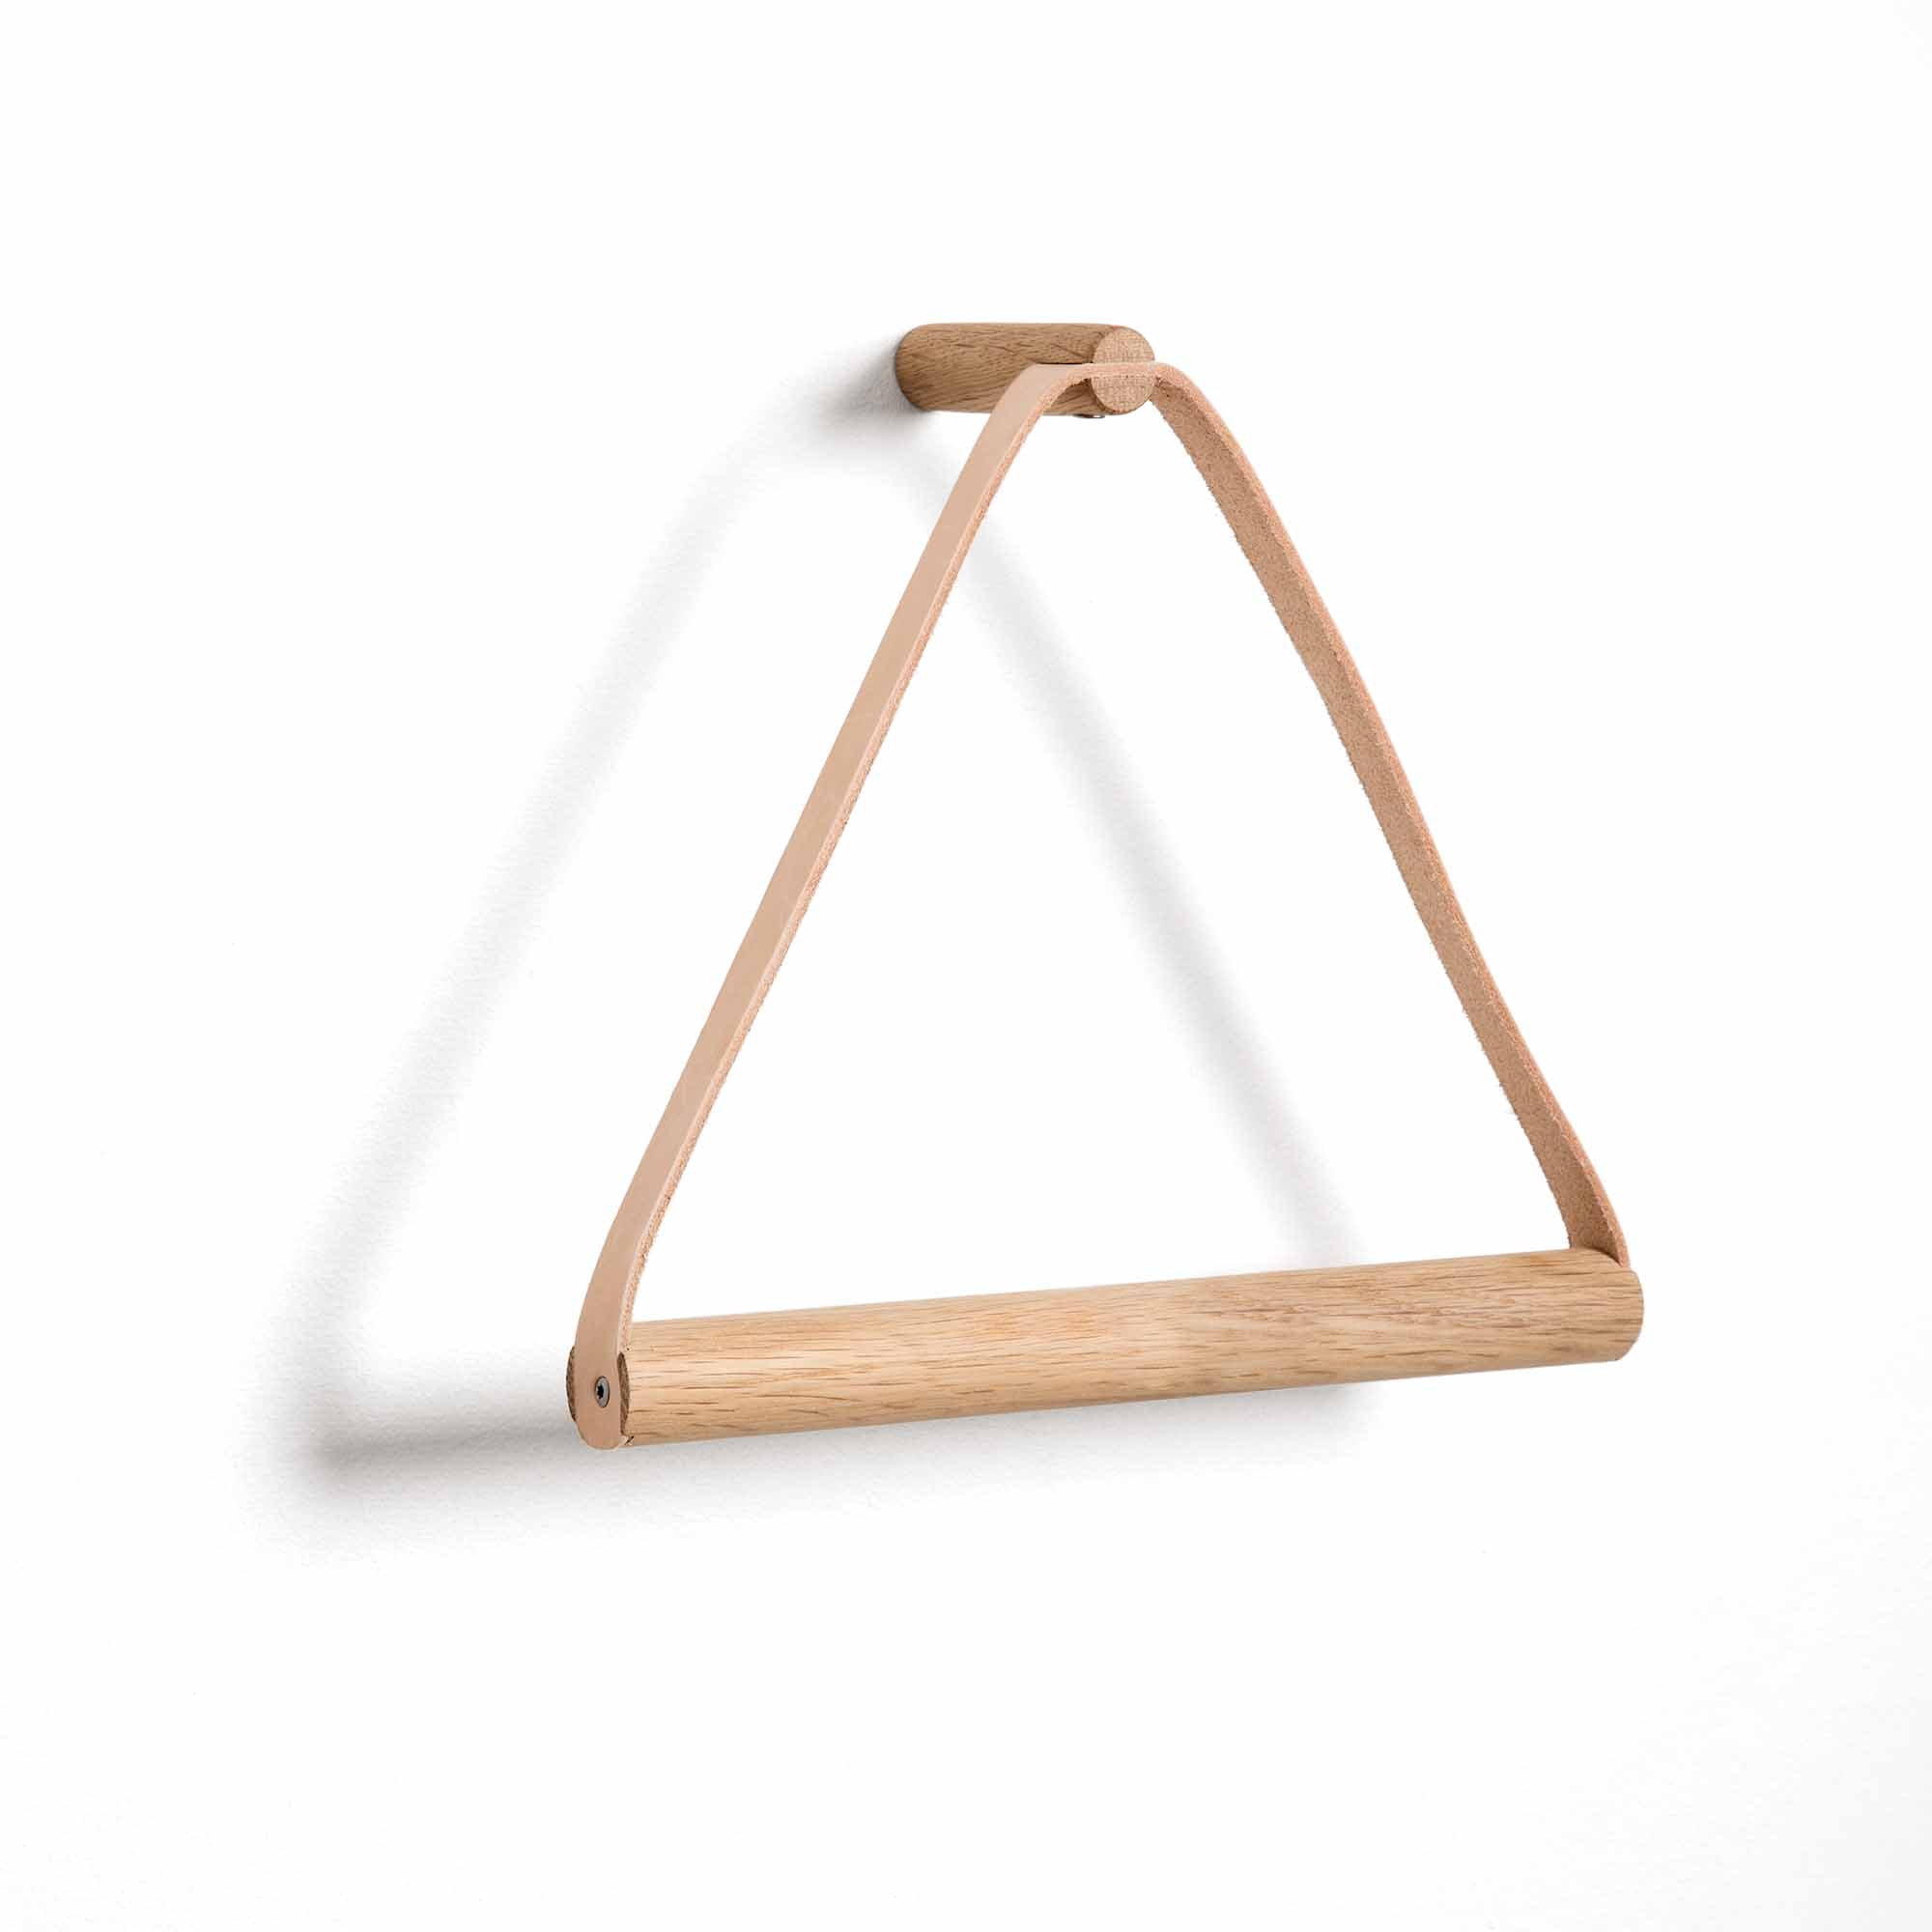 By Wirth - Towel Hanger - Nature (THA 060)